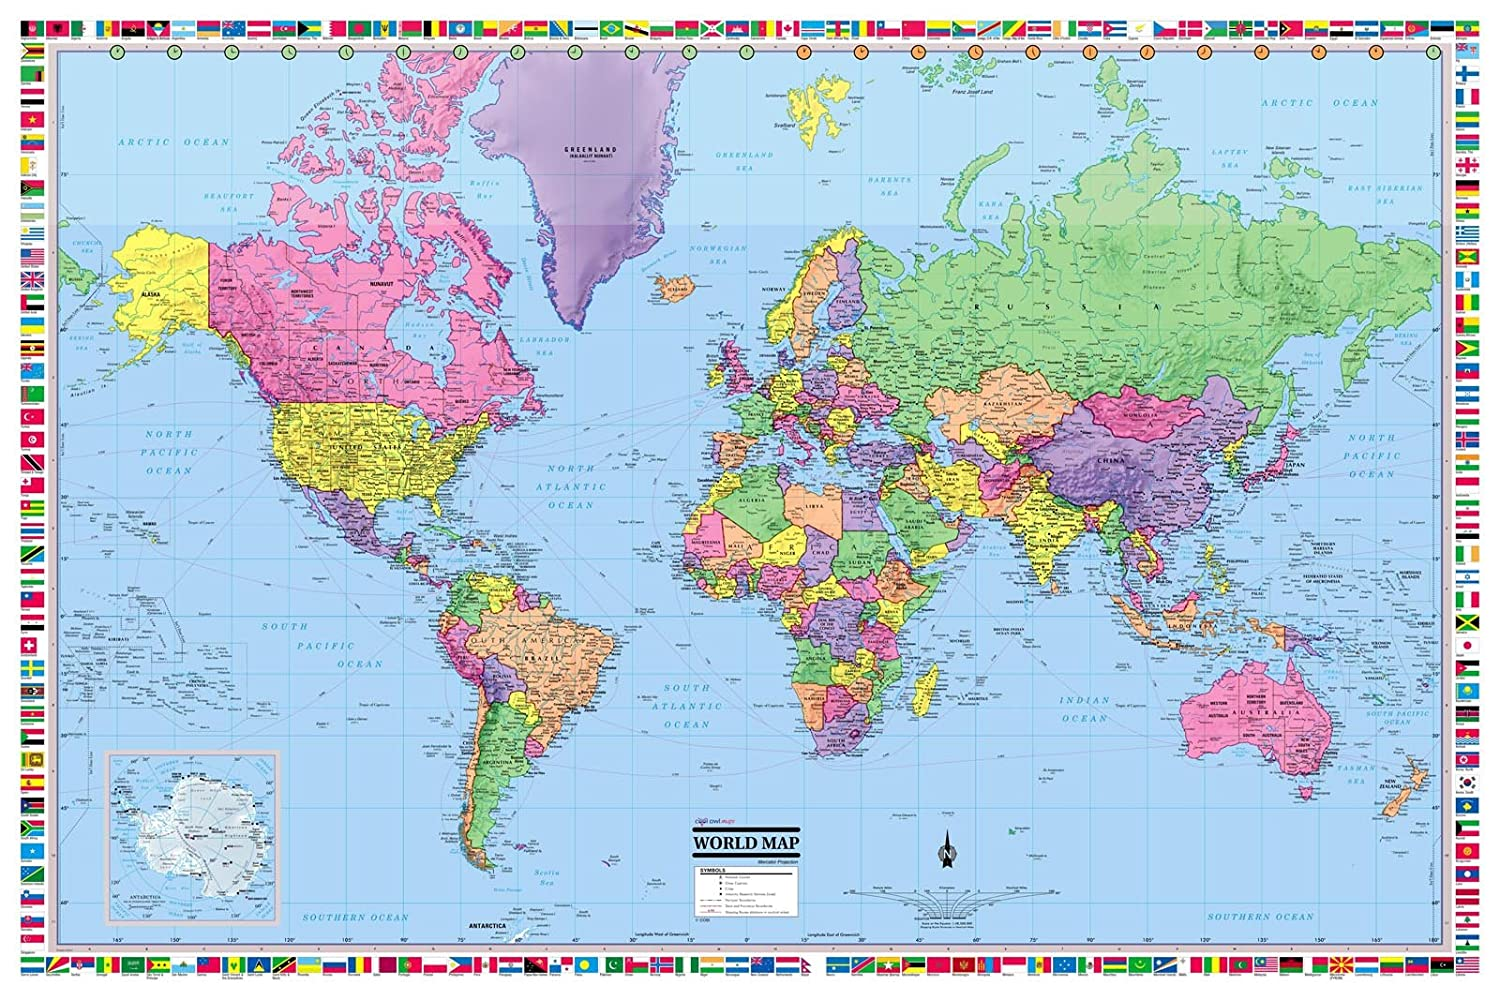 Amazon.com : CoolOwlMaps World Wall Map Political with Flags Poster ...